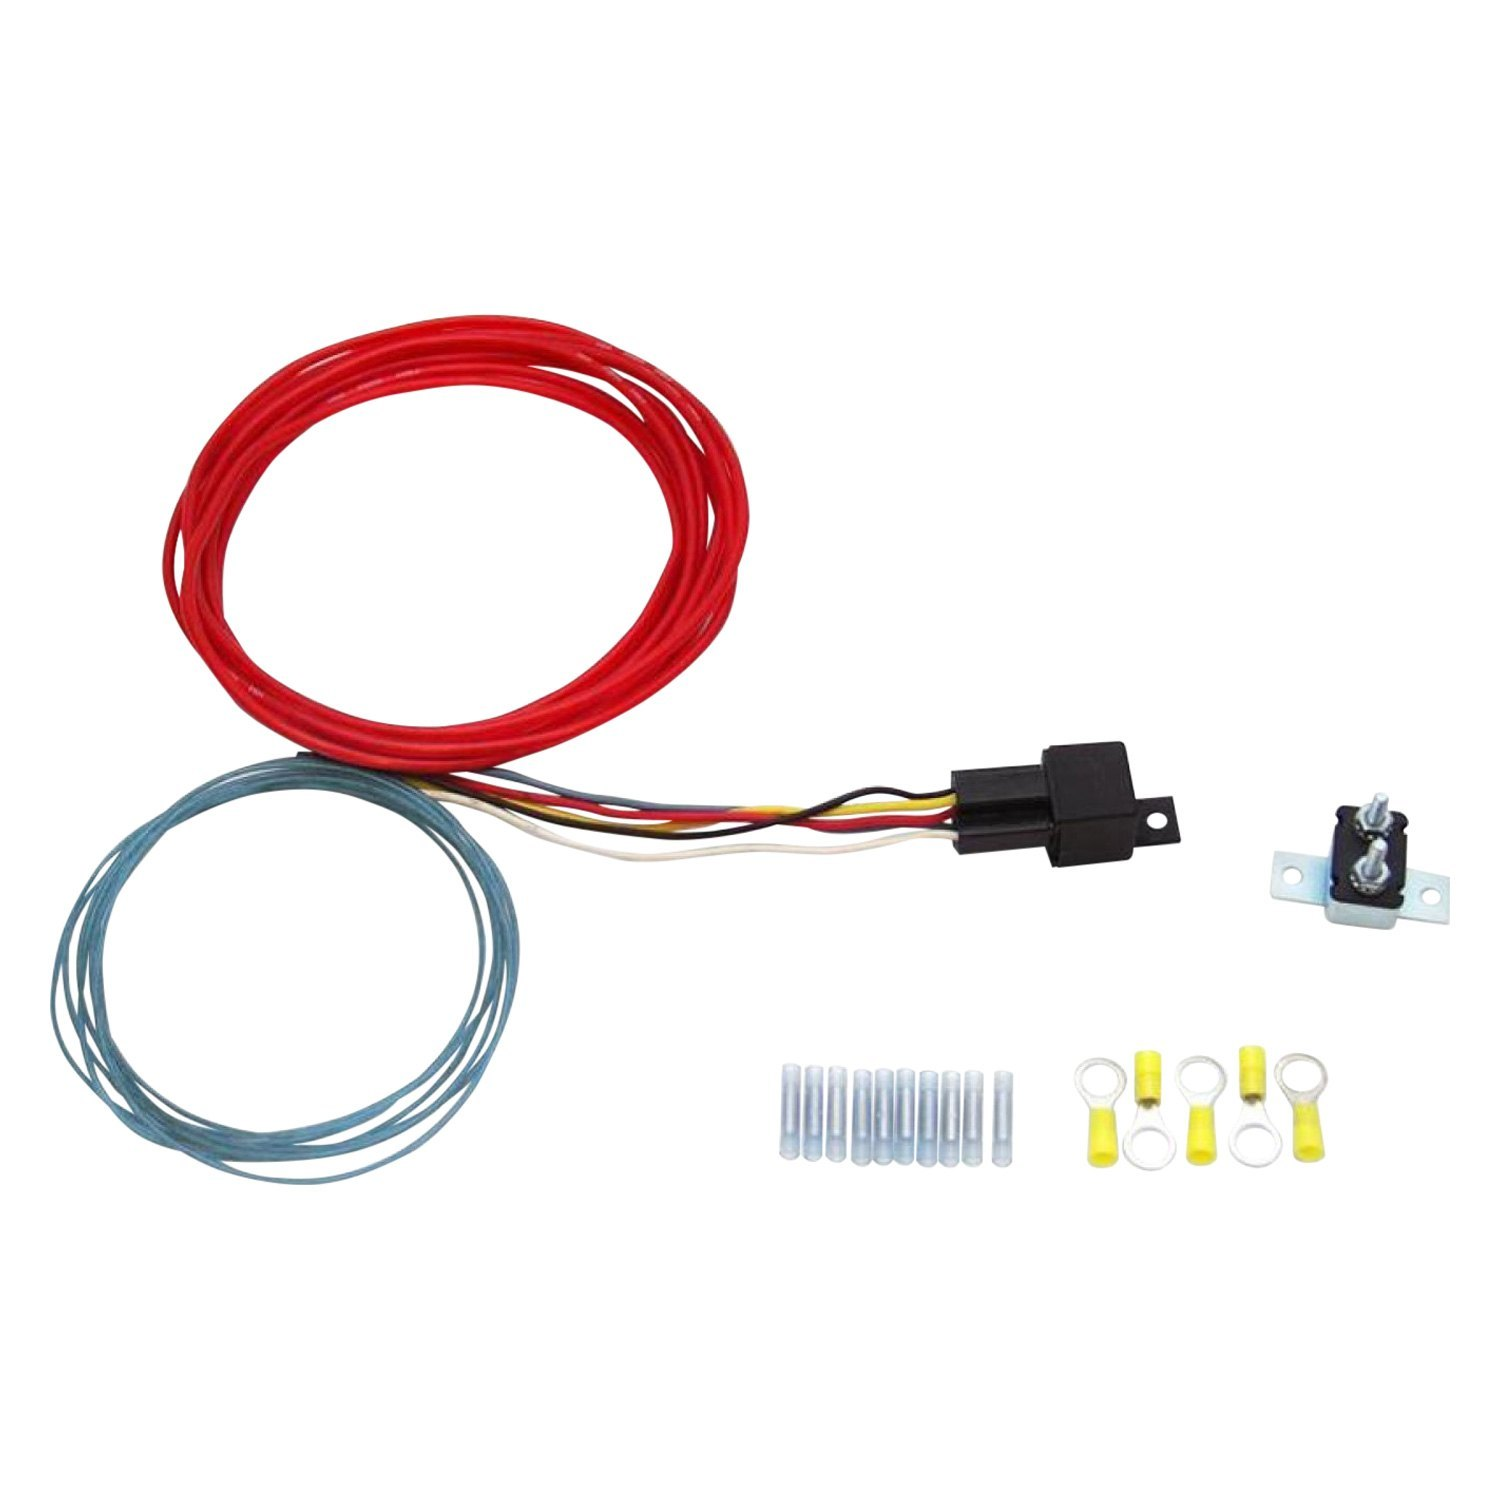 helix 174 hexharn16 single air compressor wire harness kit